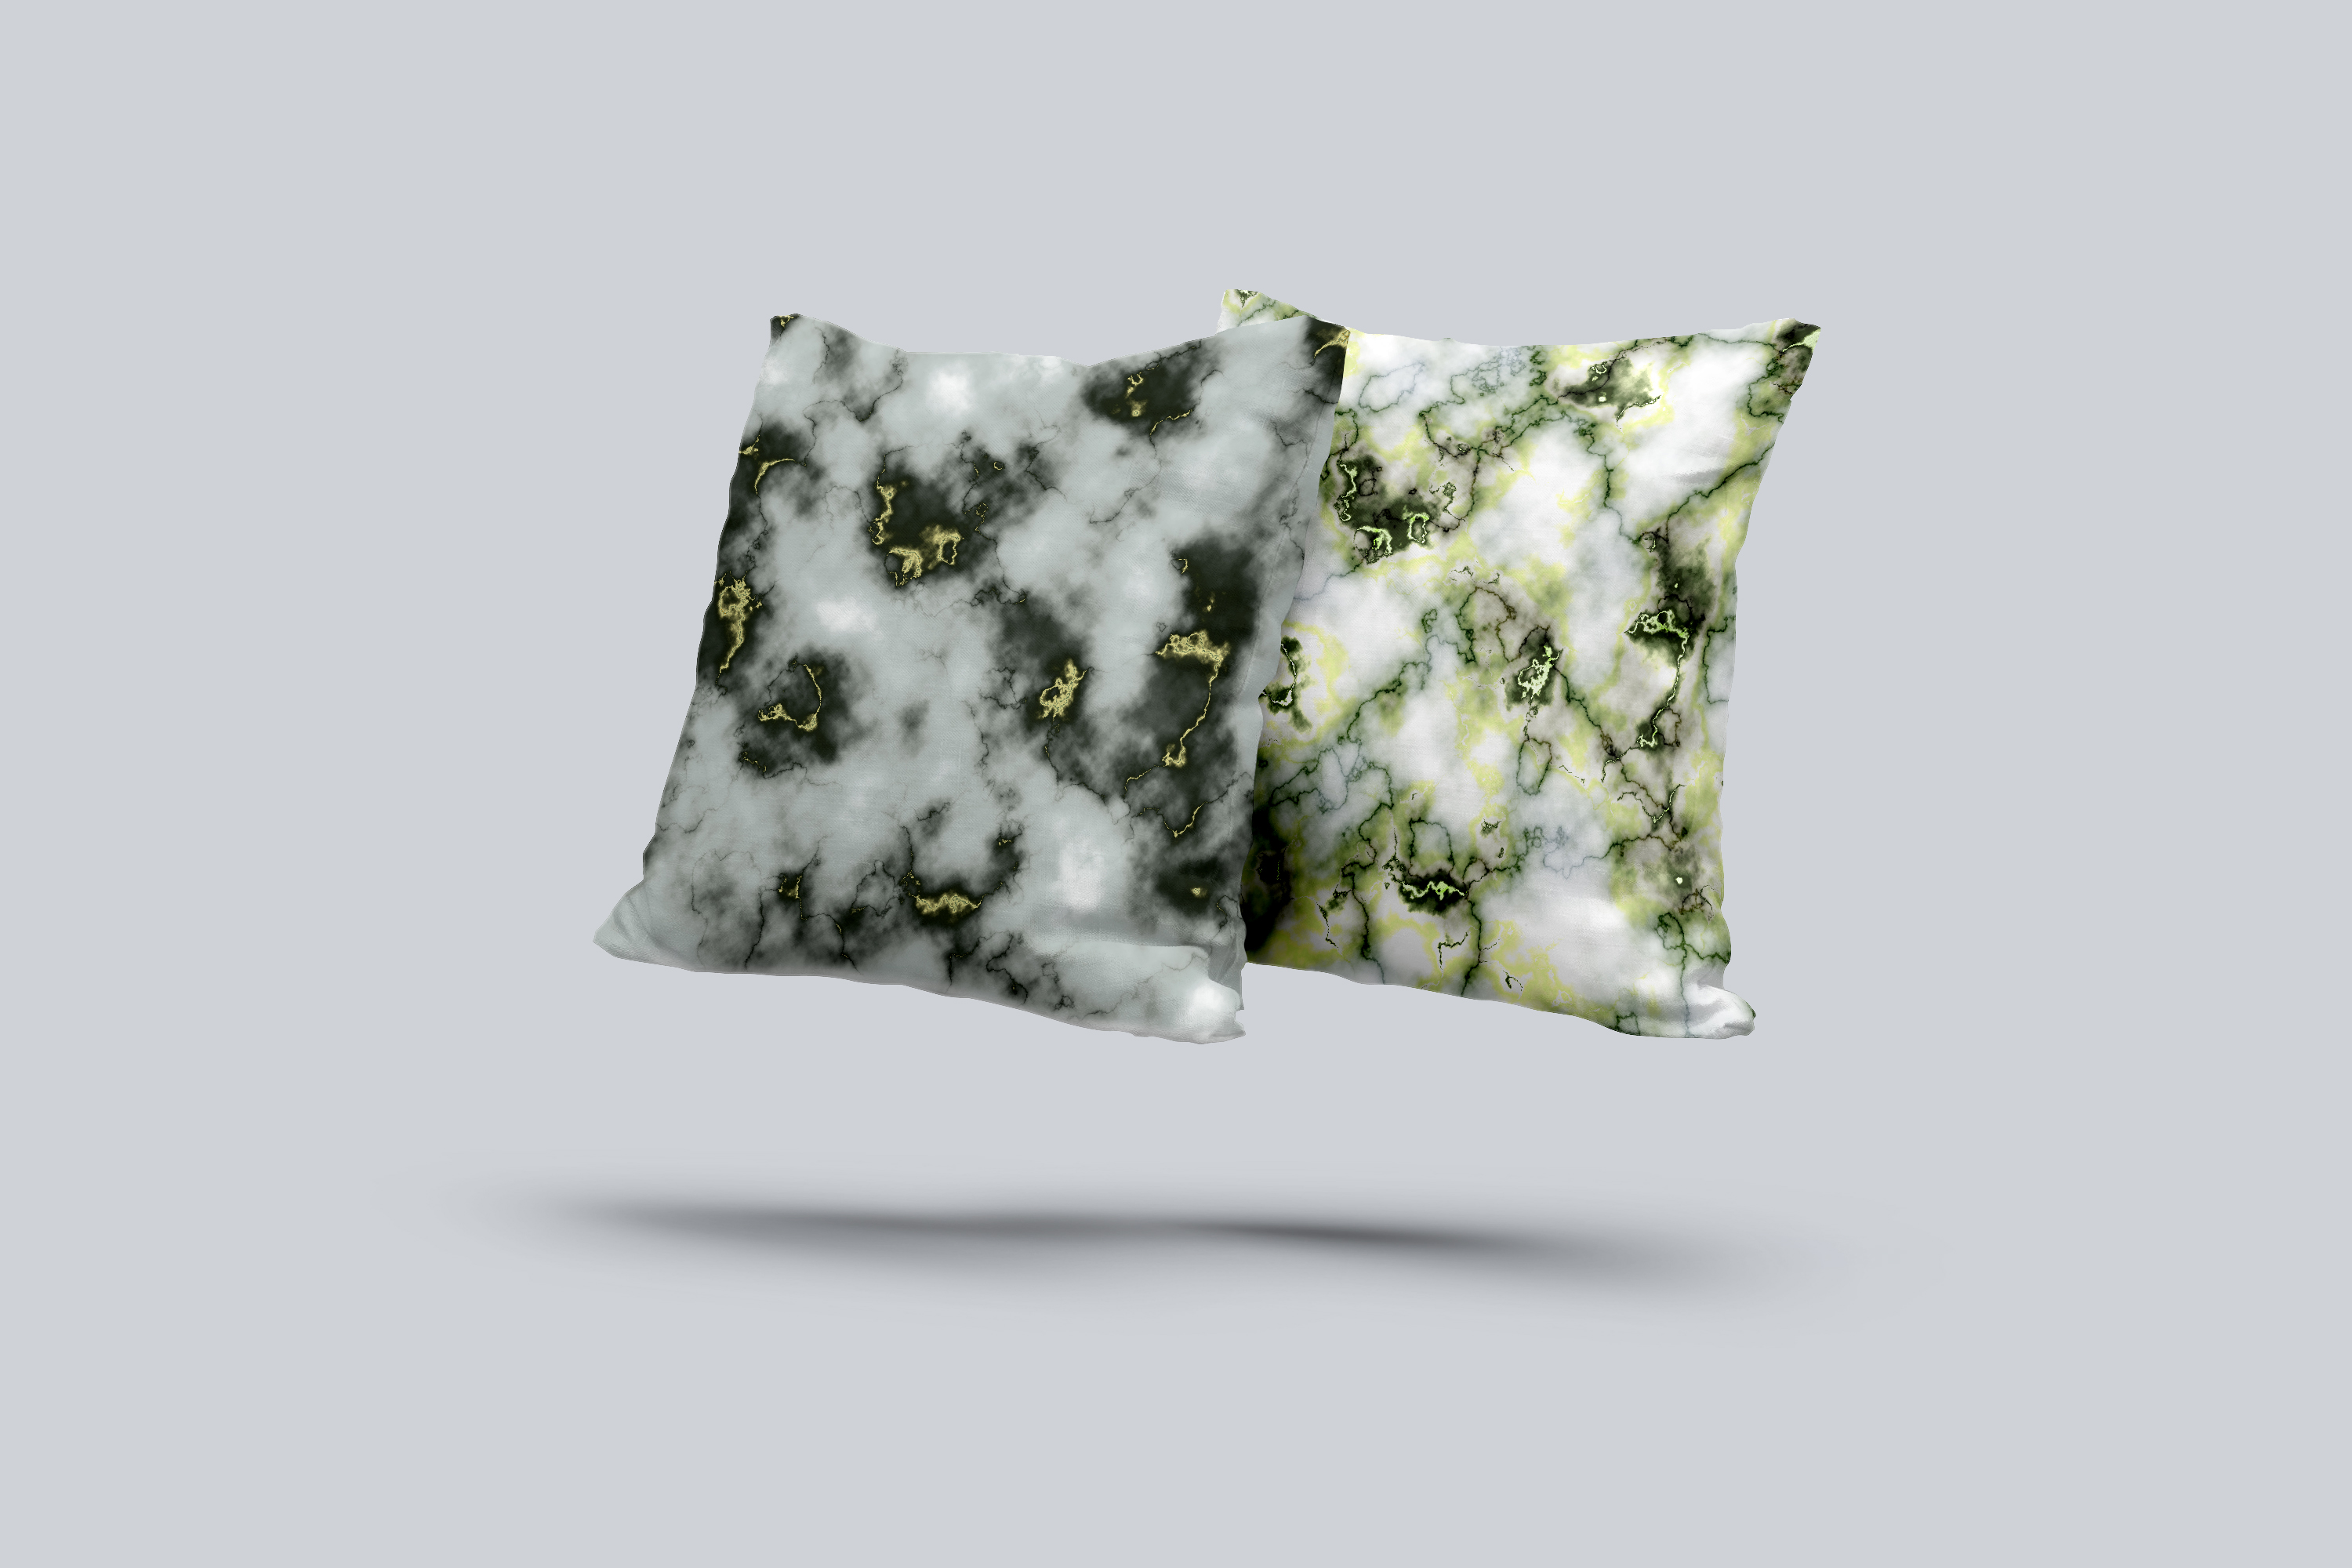 30 Realistic Marble Textures - JPG example image 2